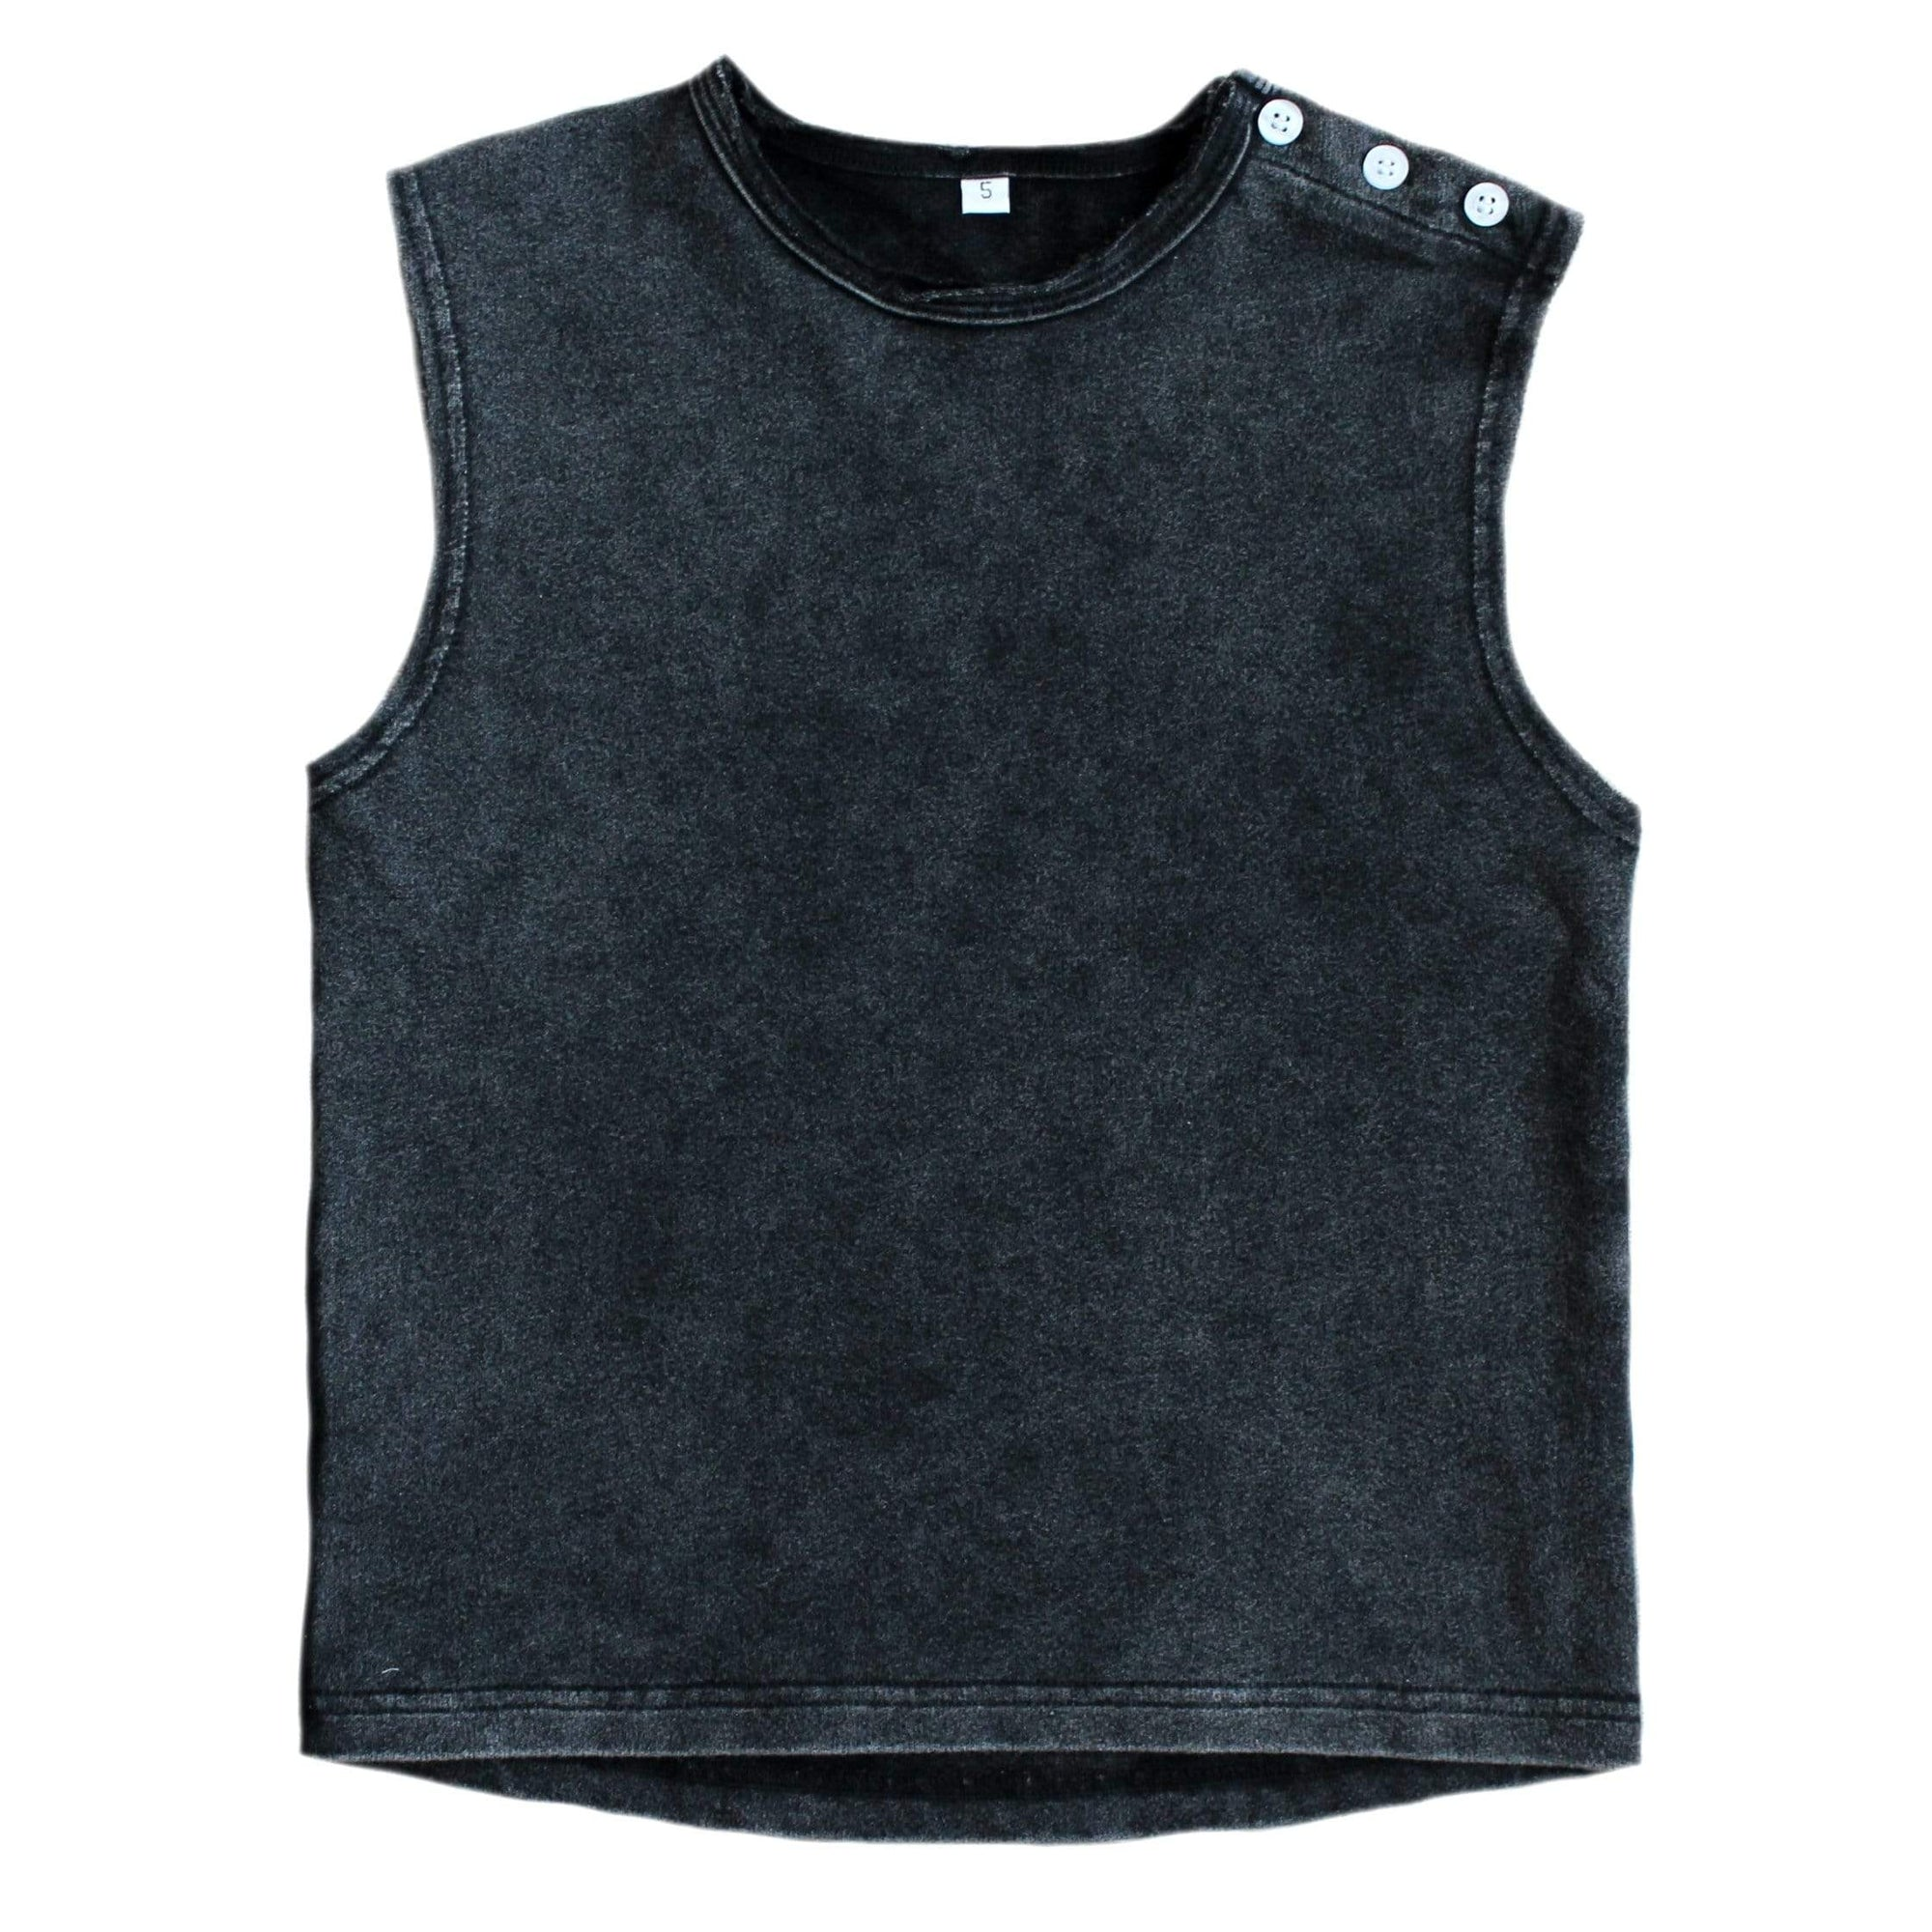 Duke of London T Shirt 6 Duke of London Muscle Tank - Acid Black